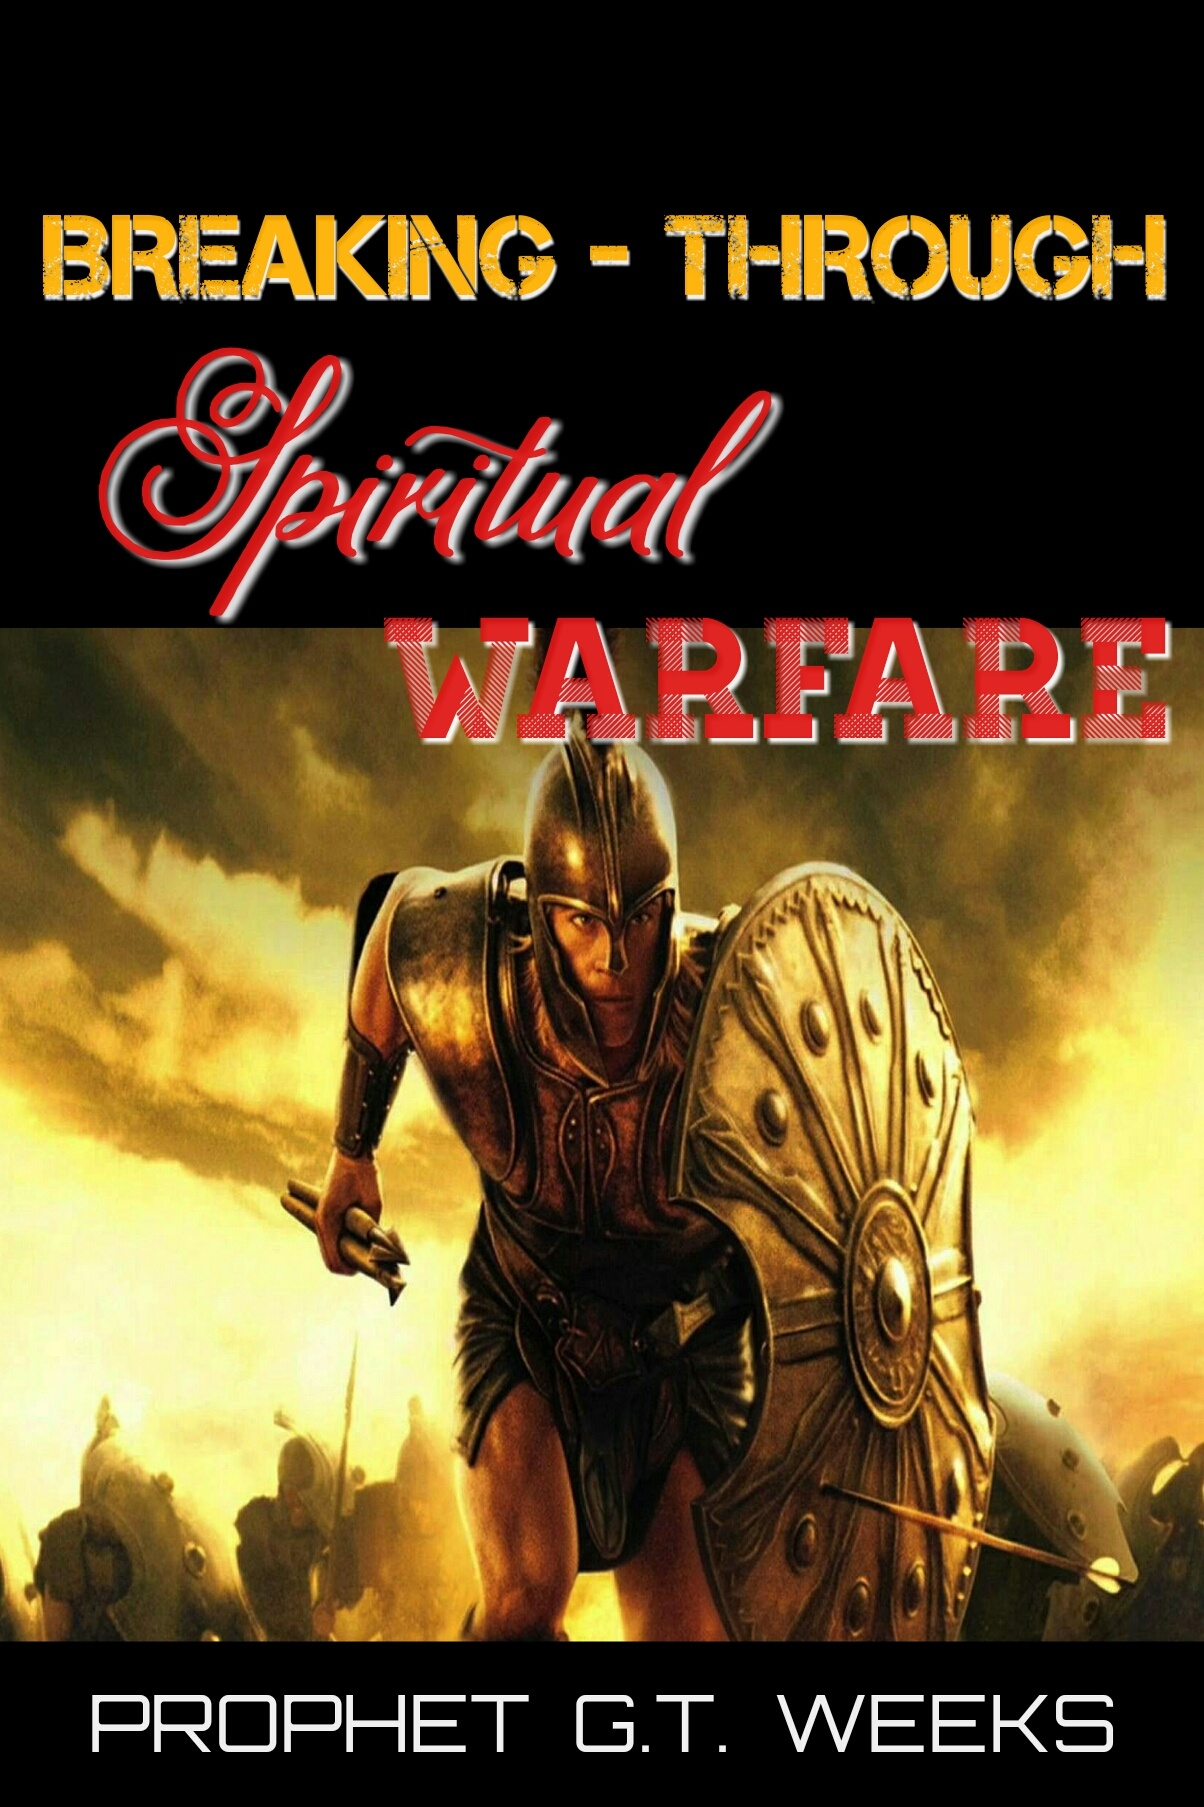 BREAKING THROUGH SPIRITUAL WARFARE